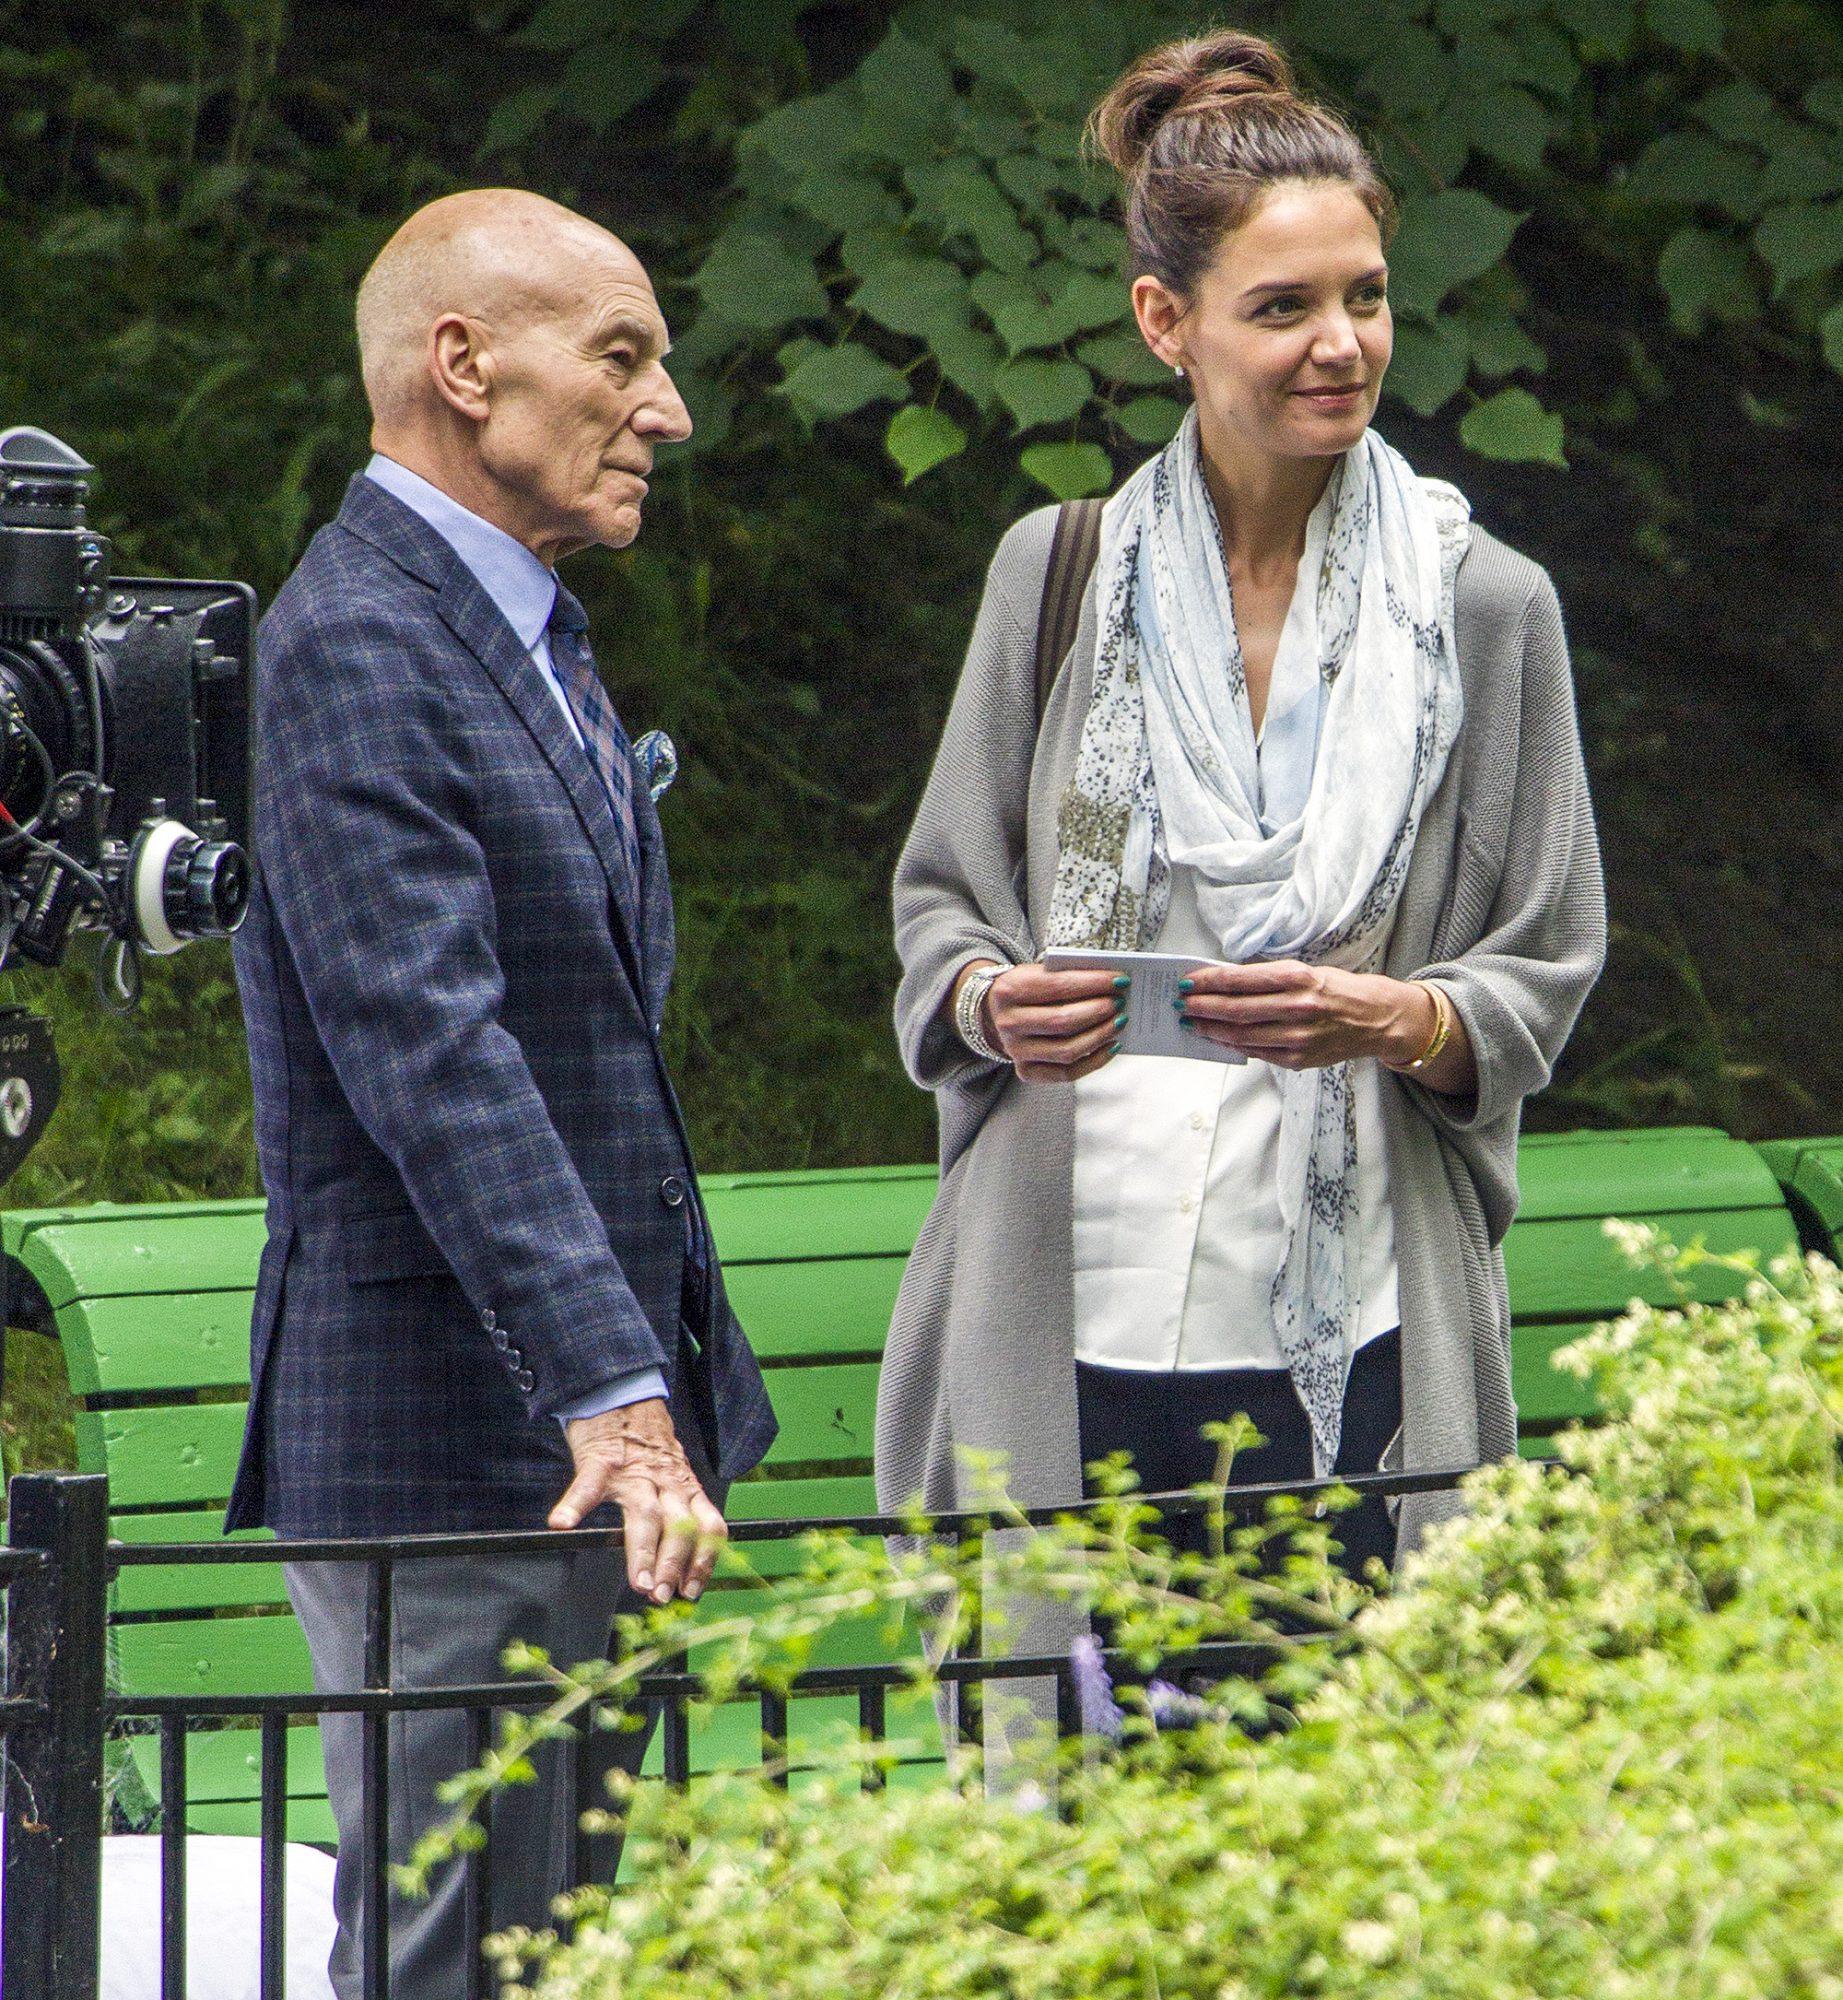 EXCLUSIVE: Katie Holmes and Patrick Stewart Film a Scene in a Montreal Park